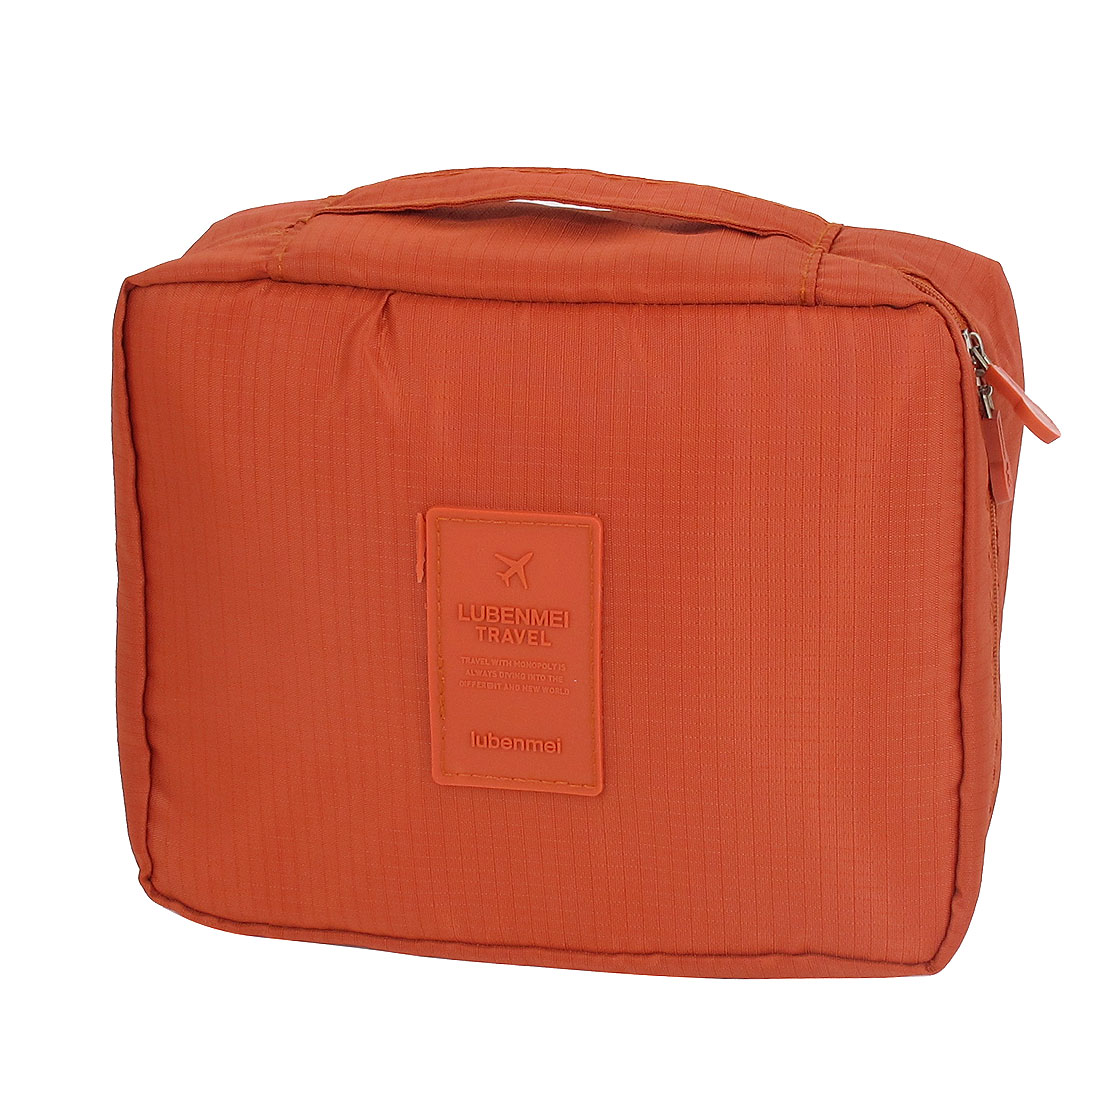 Travel Camping Toiletry Toiletries Cosmetic Shaving Wash Bag Storage Case Orange